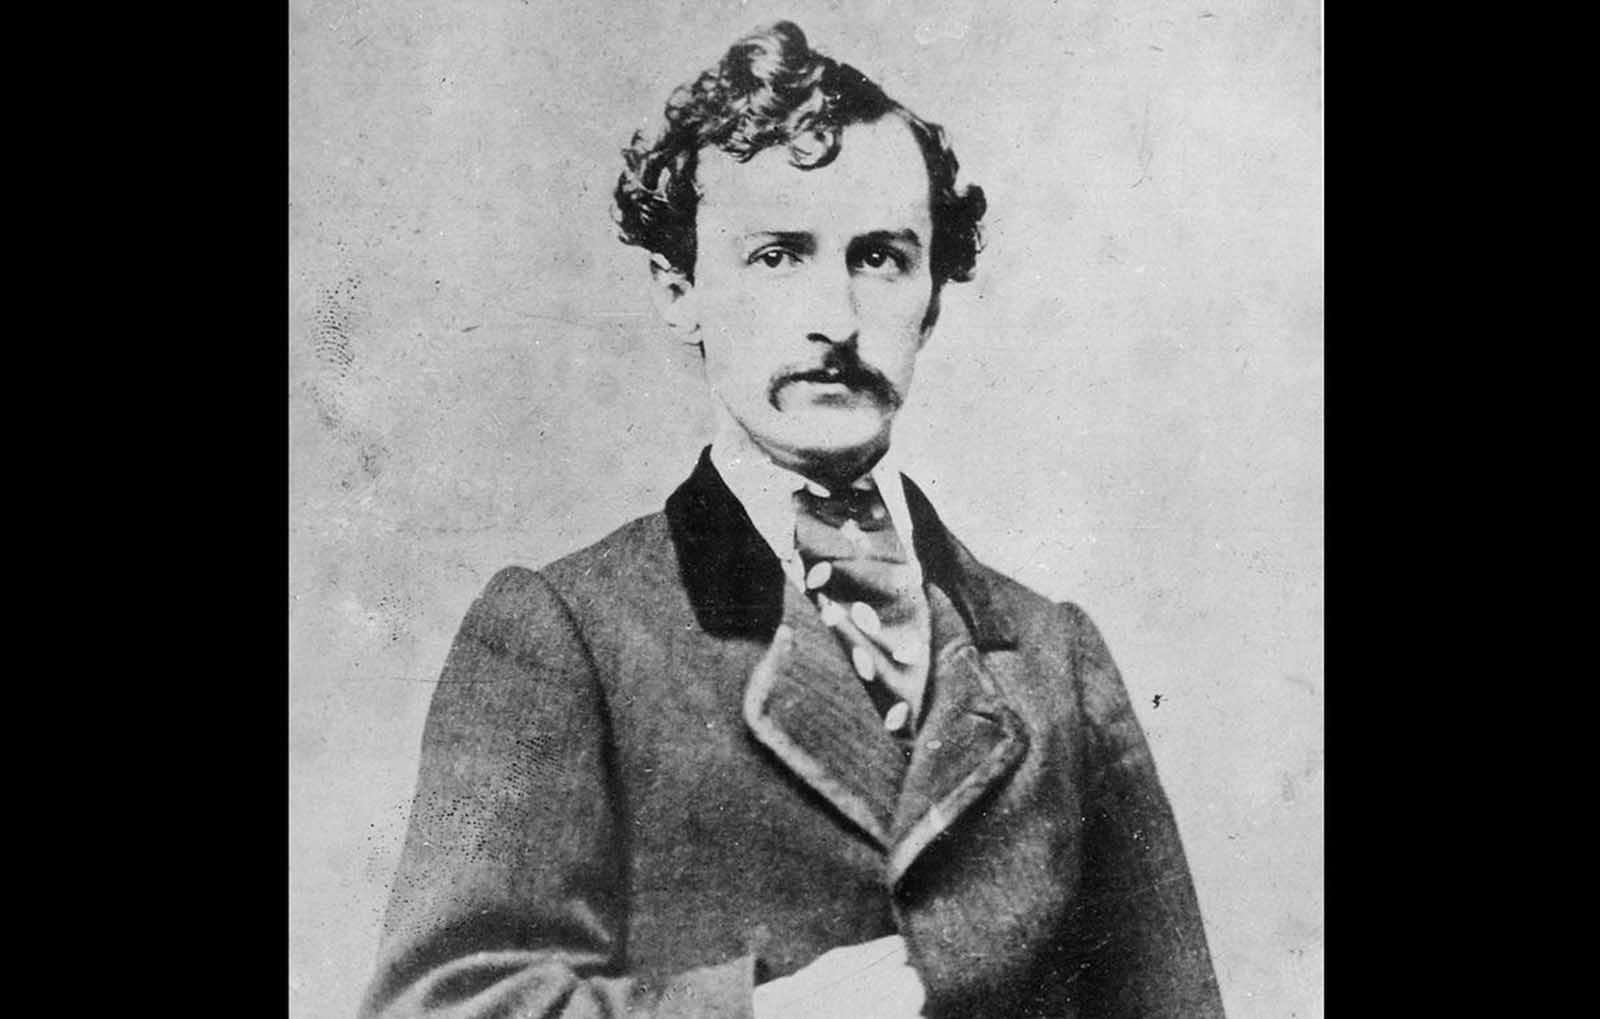 Stage actor and Confederate sympathize John Wilkes Booth, in a portrait taken some time before he assassinated President Abraham Lincoln in 1865. Booth and a group of co-conspirators planned to kill Lincoln, Vice President Andrew Johnson, and Secretary of State William Seward, hoping to assist the Confederacy, despite the earlier surrender of Robert E. Lee. After he shot Lincoln at Ford's Theater, in Washington, District of Columbia, on April 14, 1865, he fled to a farm in rural northern Virginia, but was tracked down 12 days later, and killed by a Union soldier.